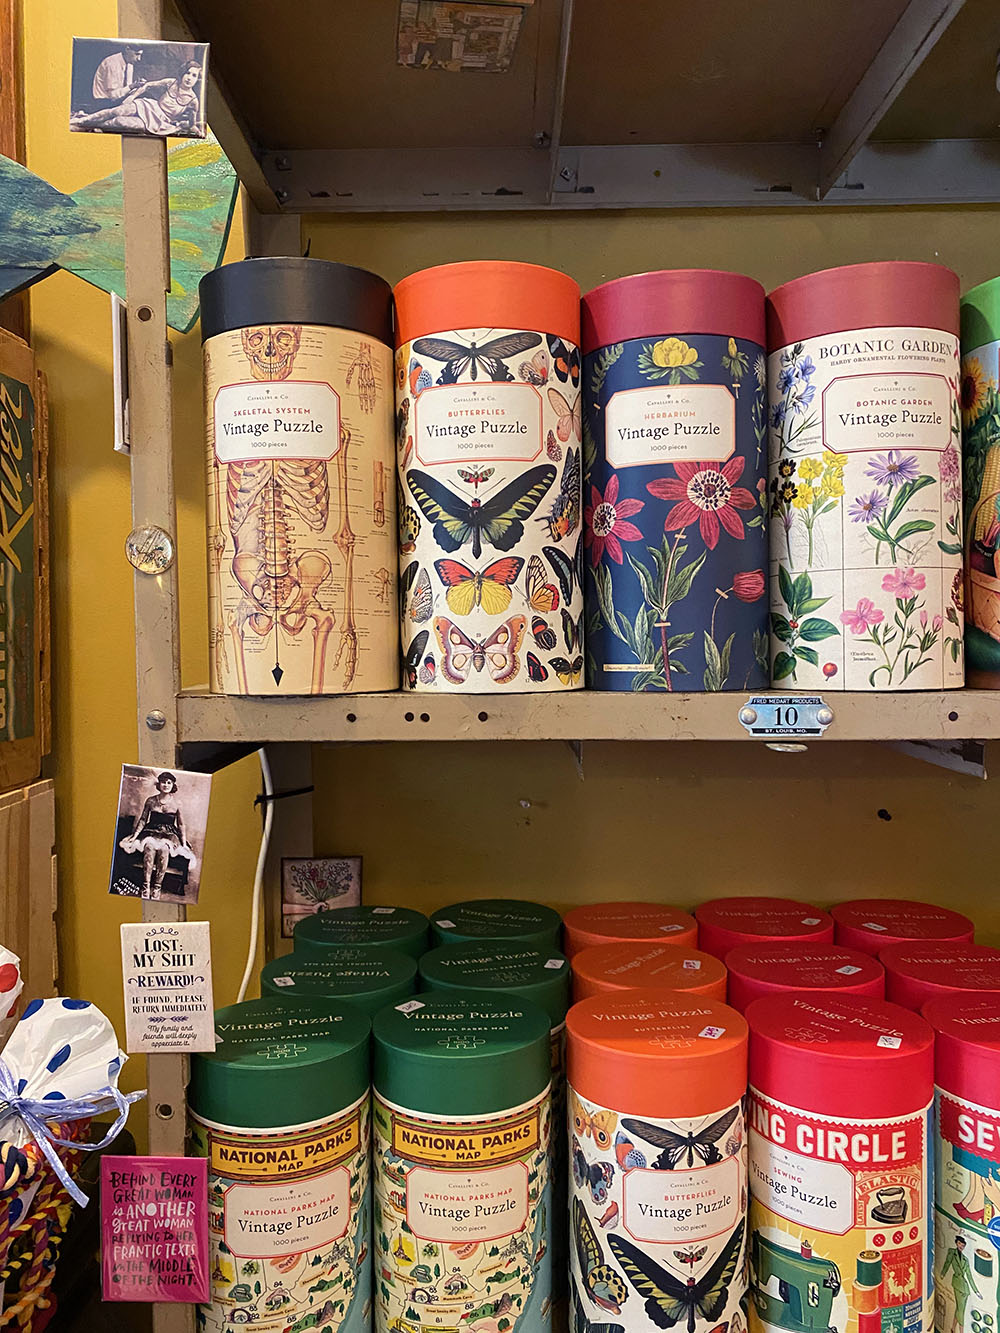 Display of vintage inspired puzzles at the Junque Drawer Boutique & Studio in Olathe, Kansas